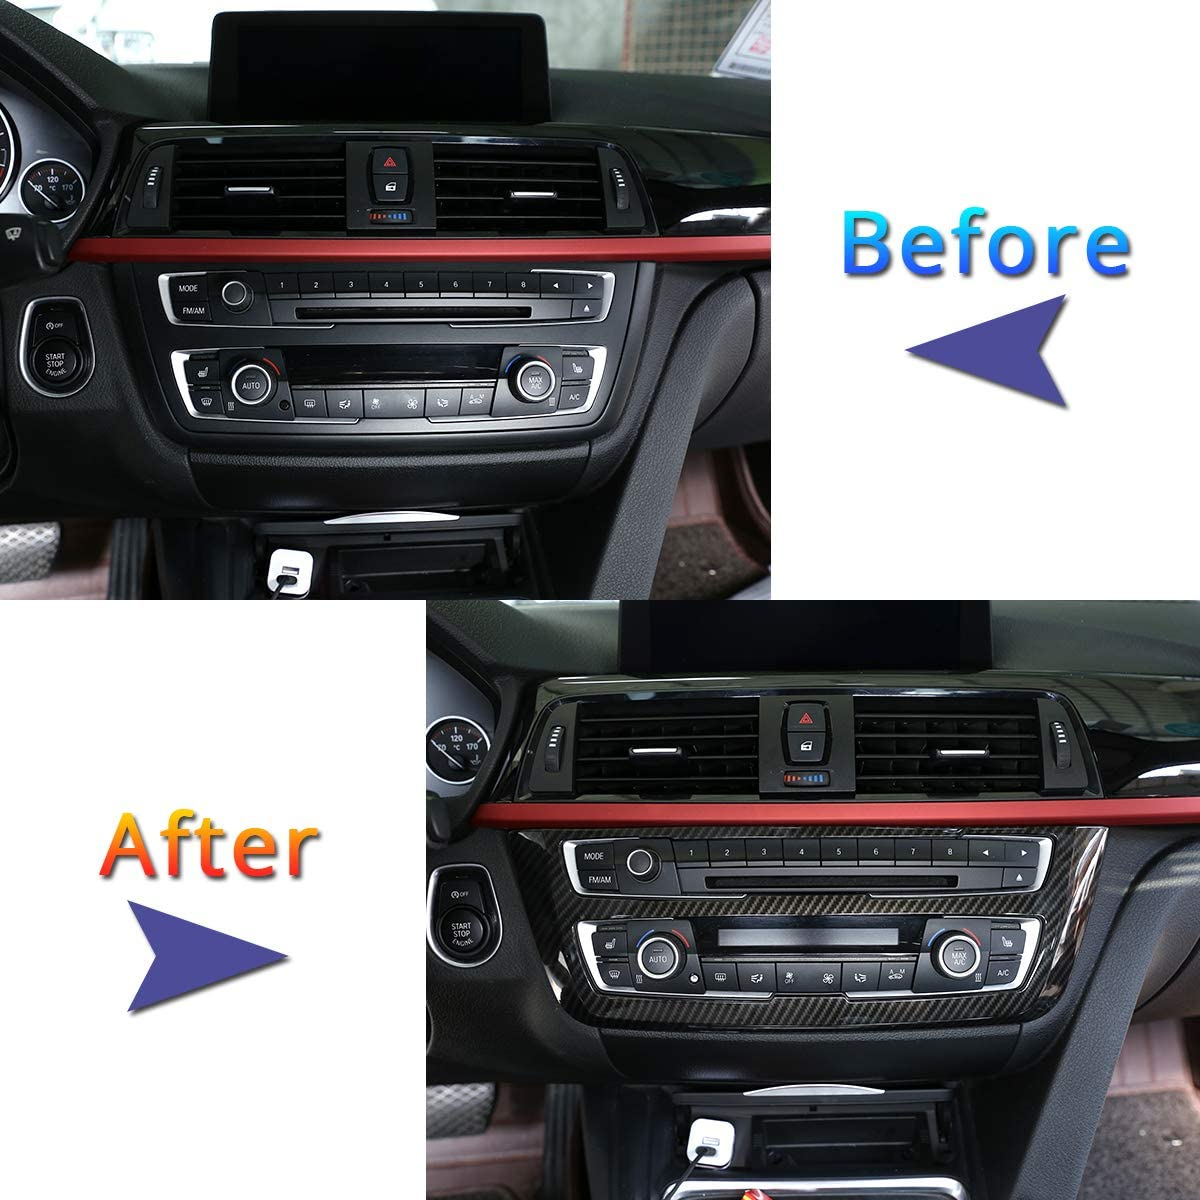 YUECHI Carbon Fiber Style ABS Plastic Center Decoration Frame Trim for BMW 3 4 Series GT F30 F32 F34 2013-2018